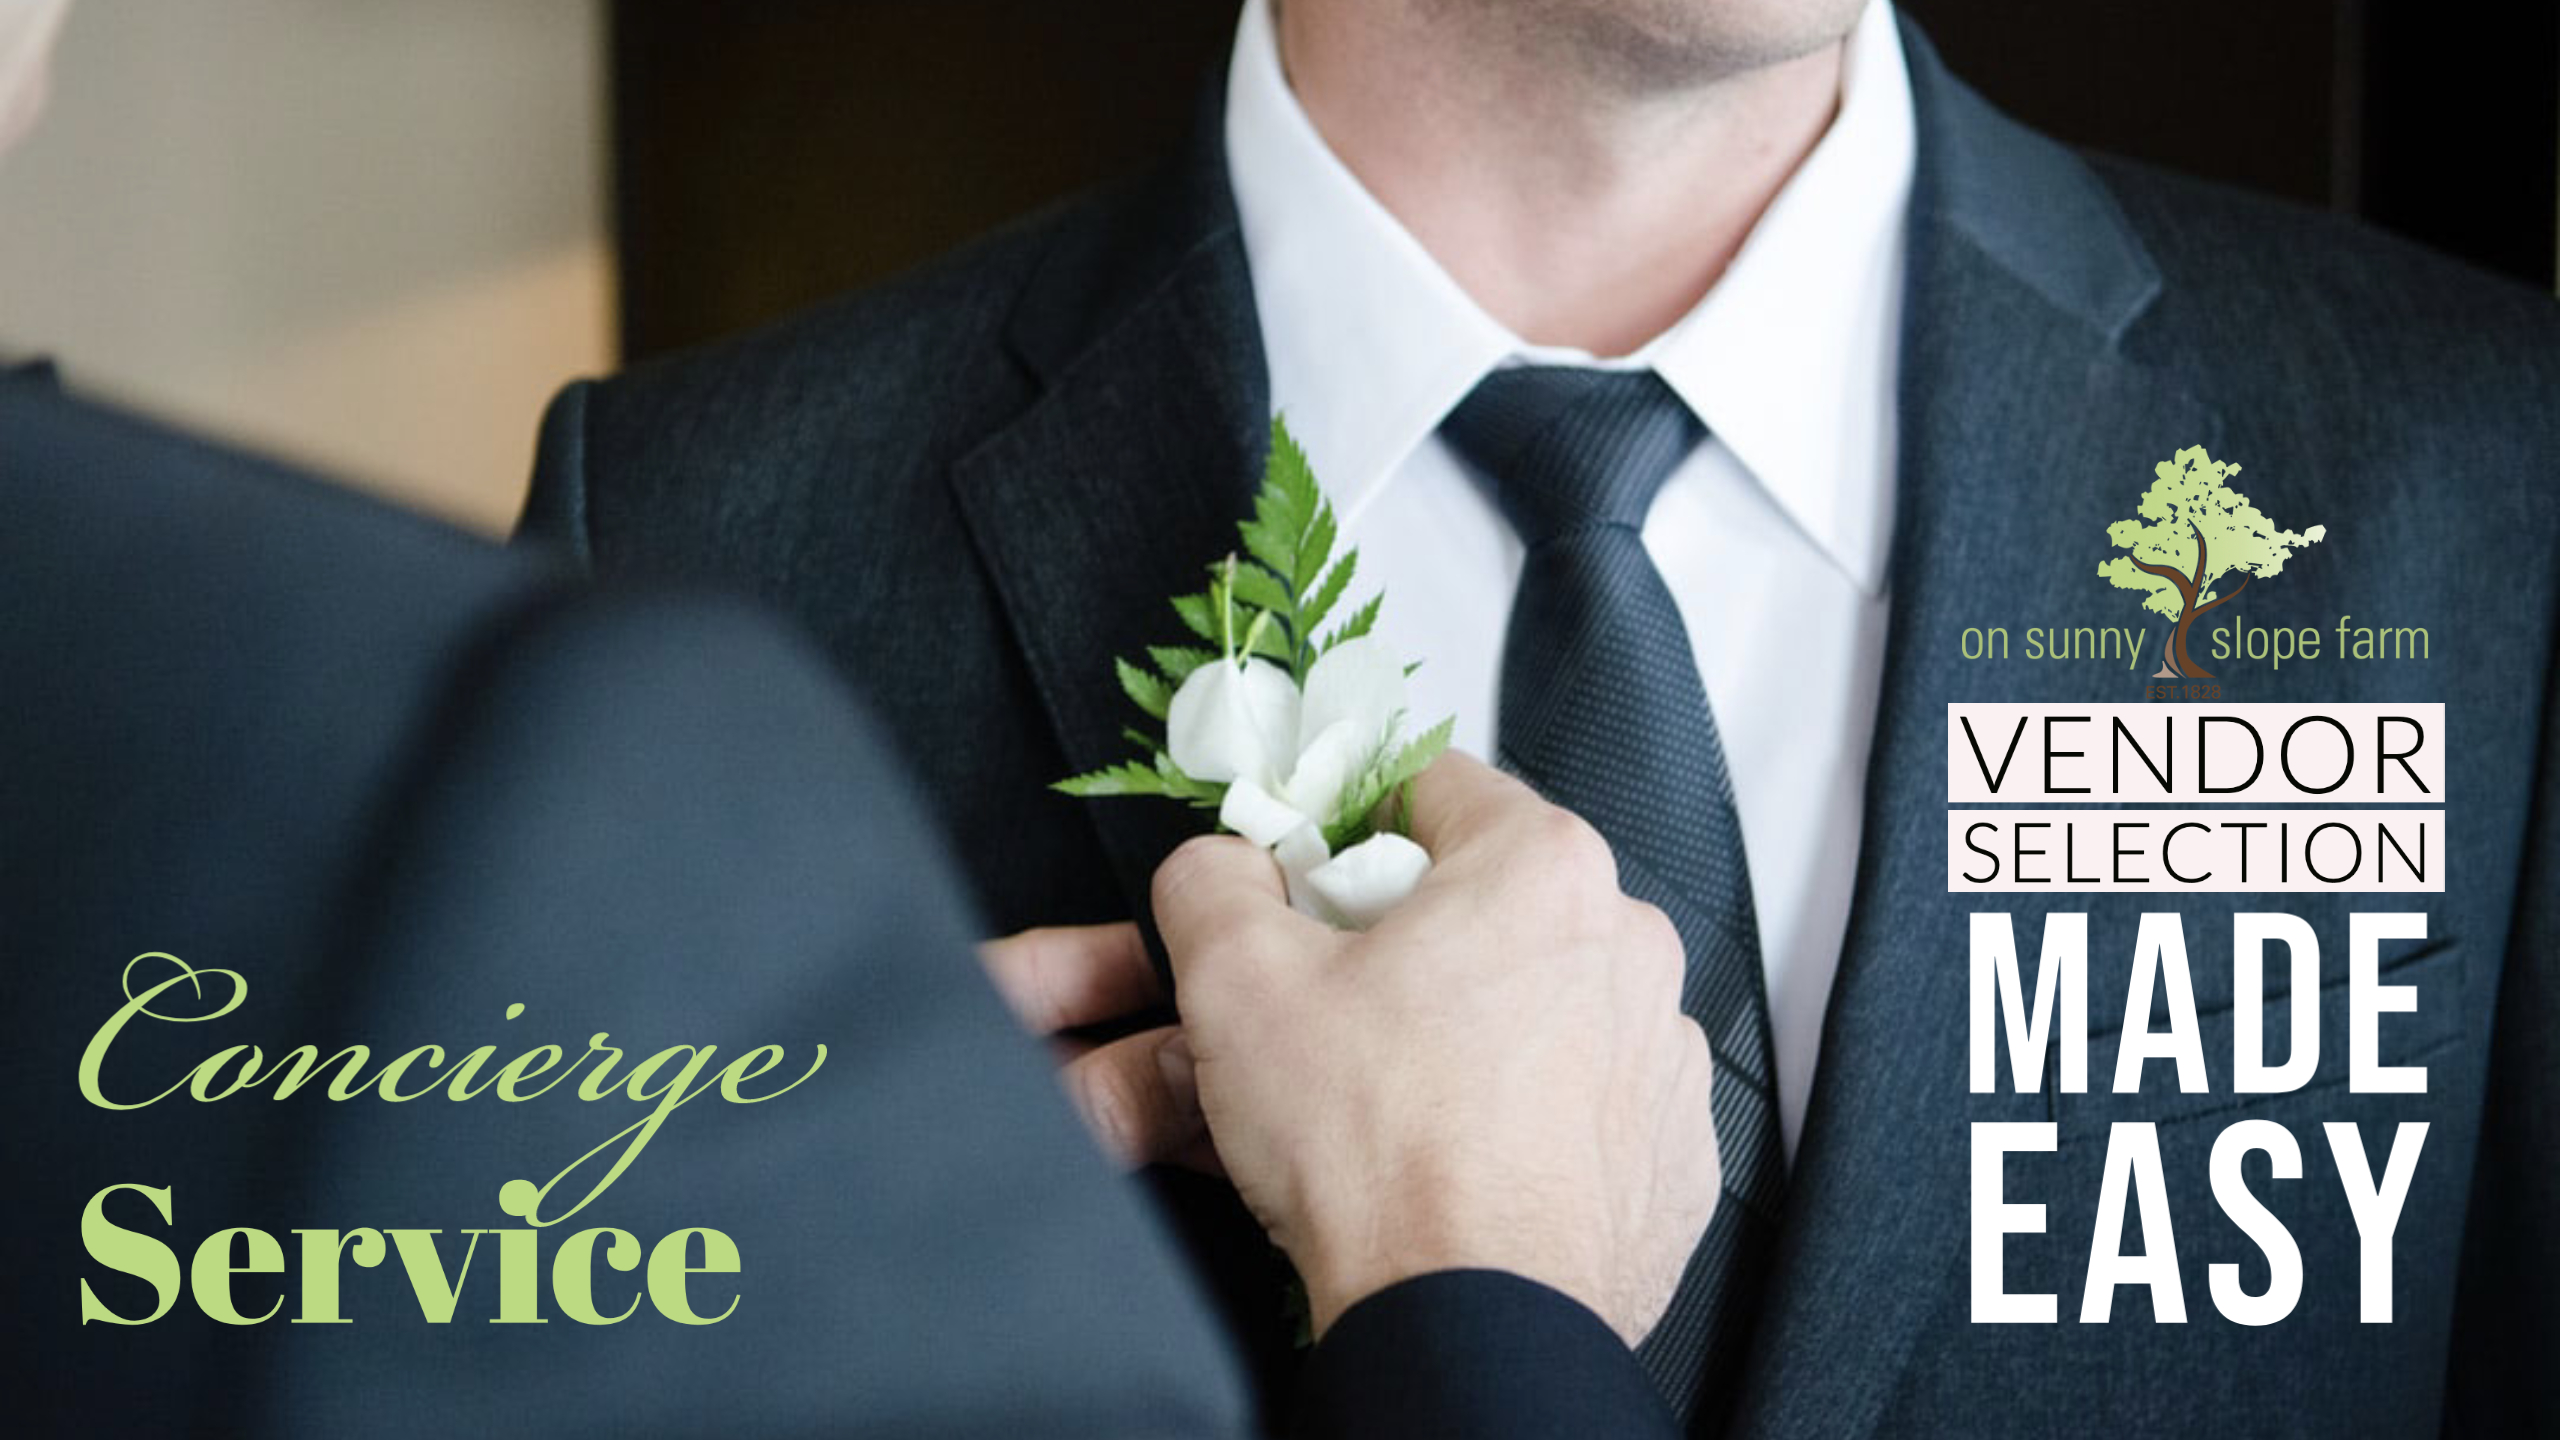 Concierge Vendor Selection Service